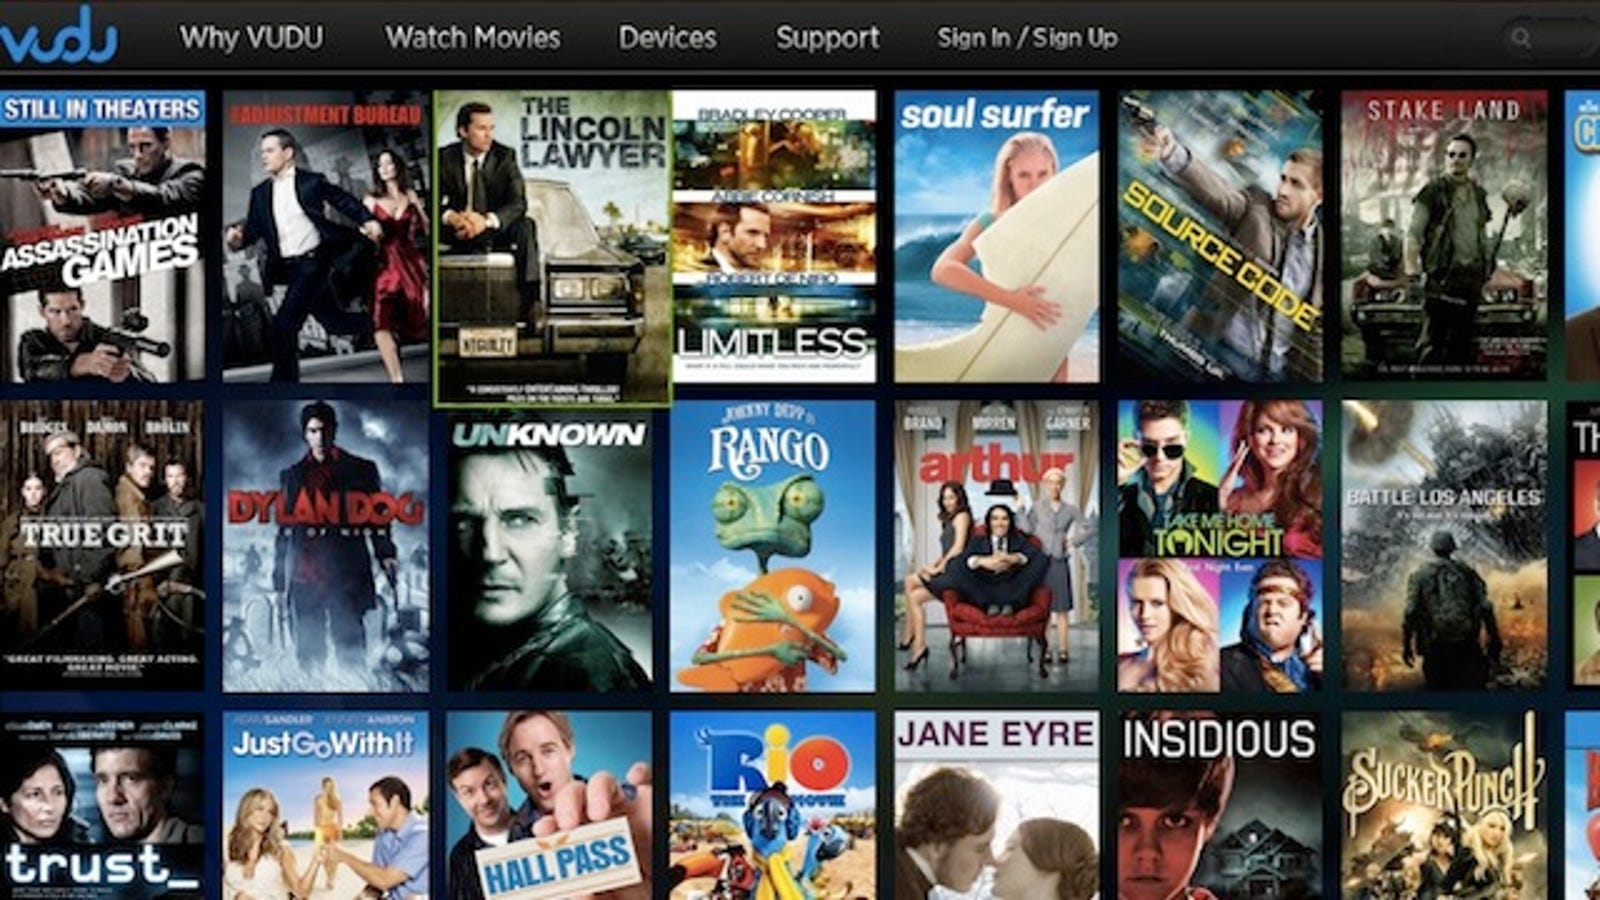 Watch Movies on Your iPad Without an App Using VUDU